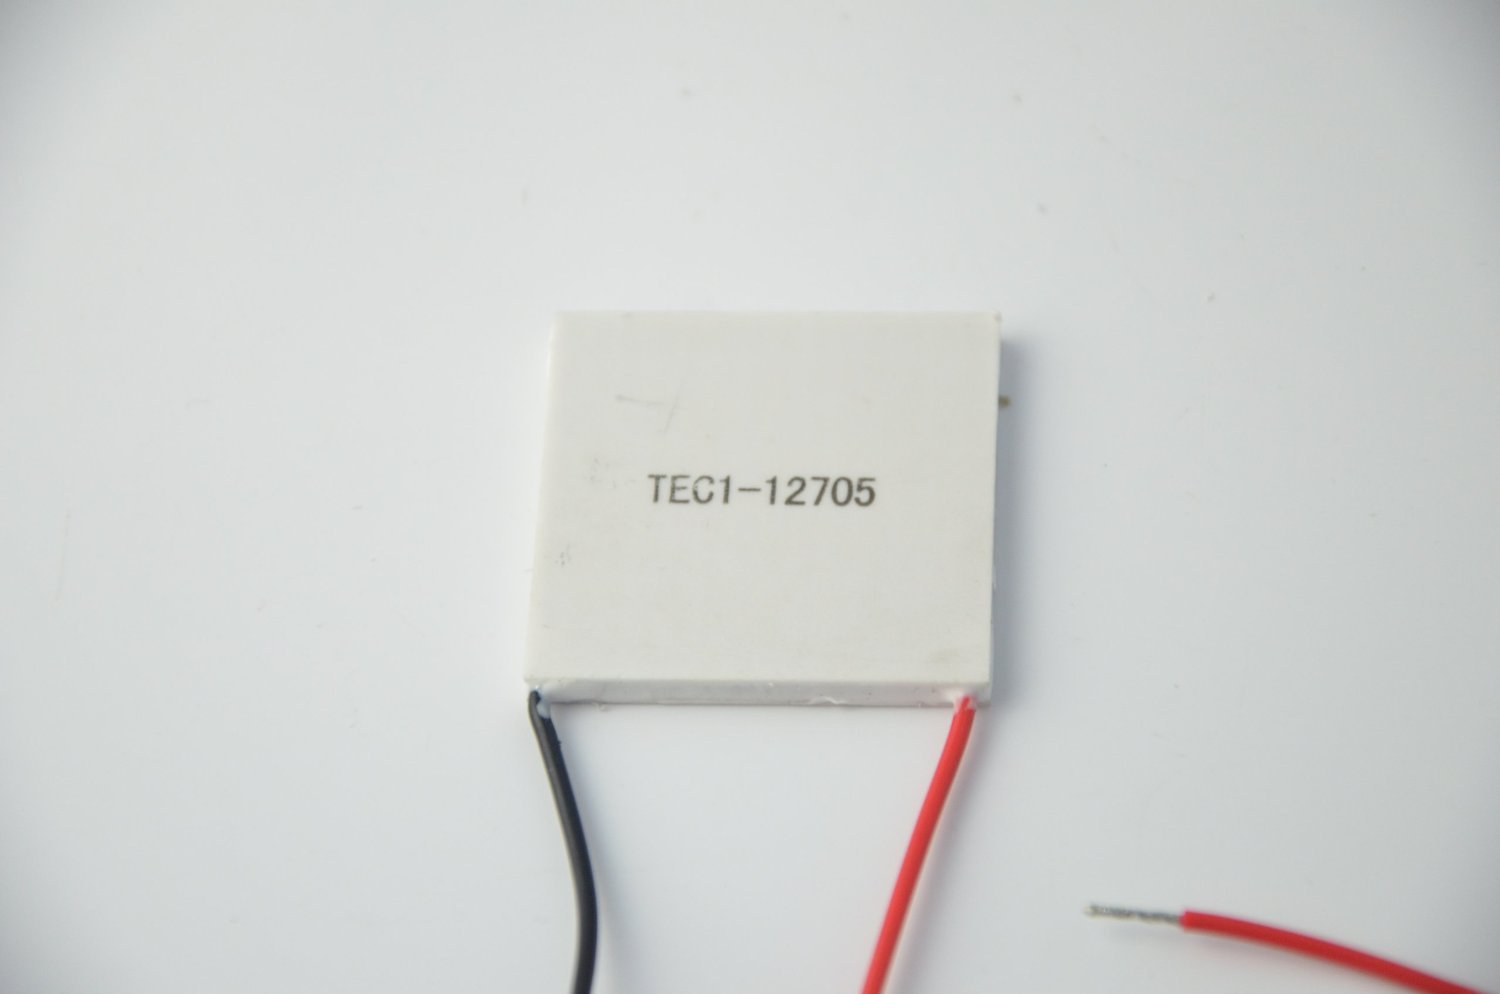 365inventPack of 4 Tec1-12705 12v Semiconductor Ceramics Cooling Piece 45W 40403.8mm